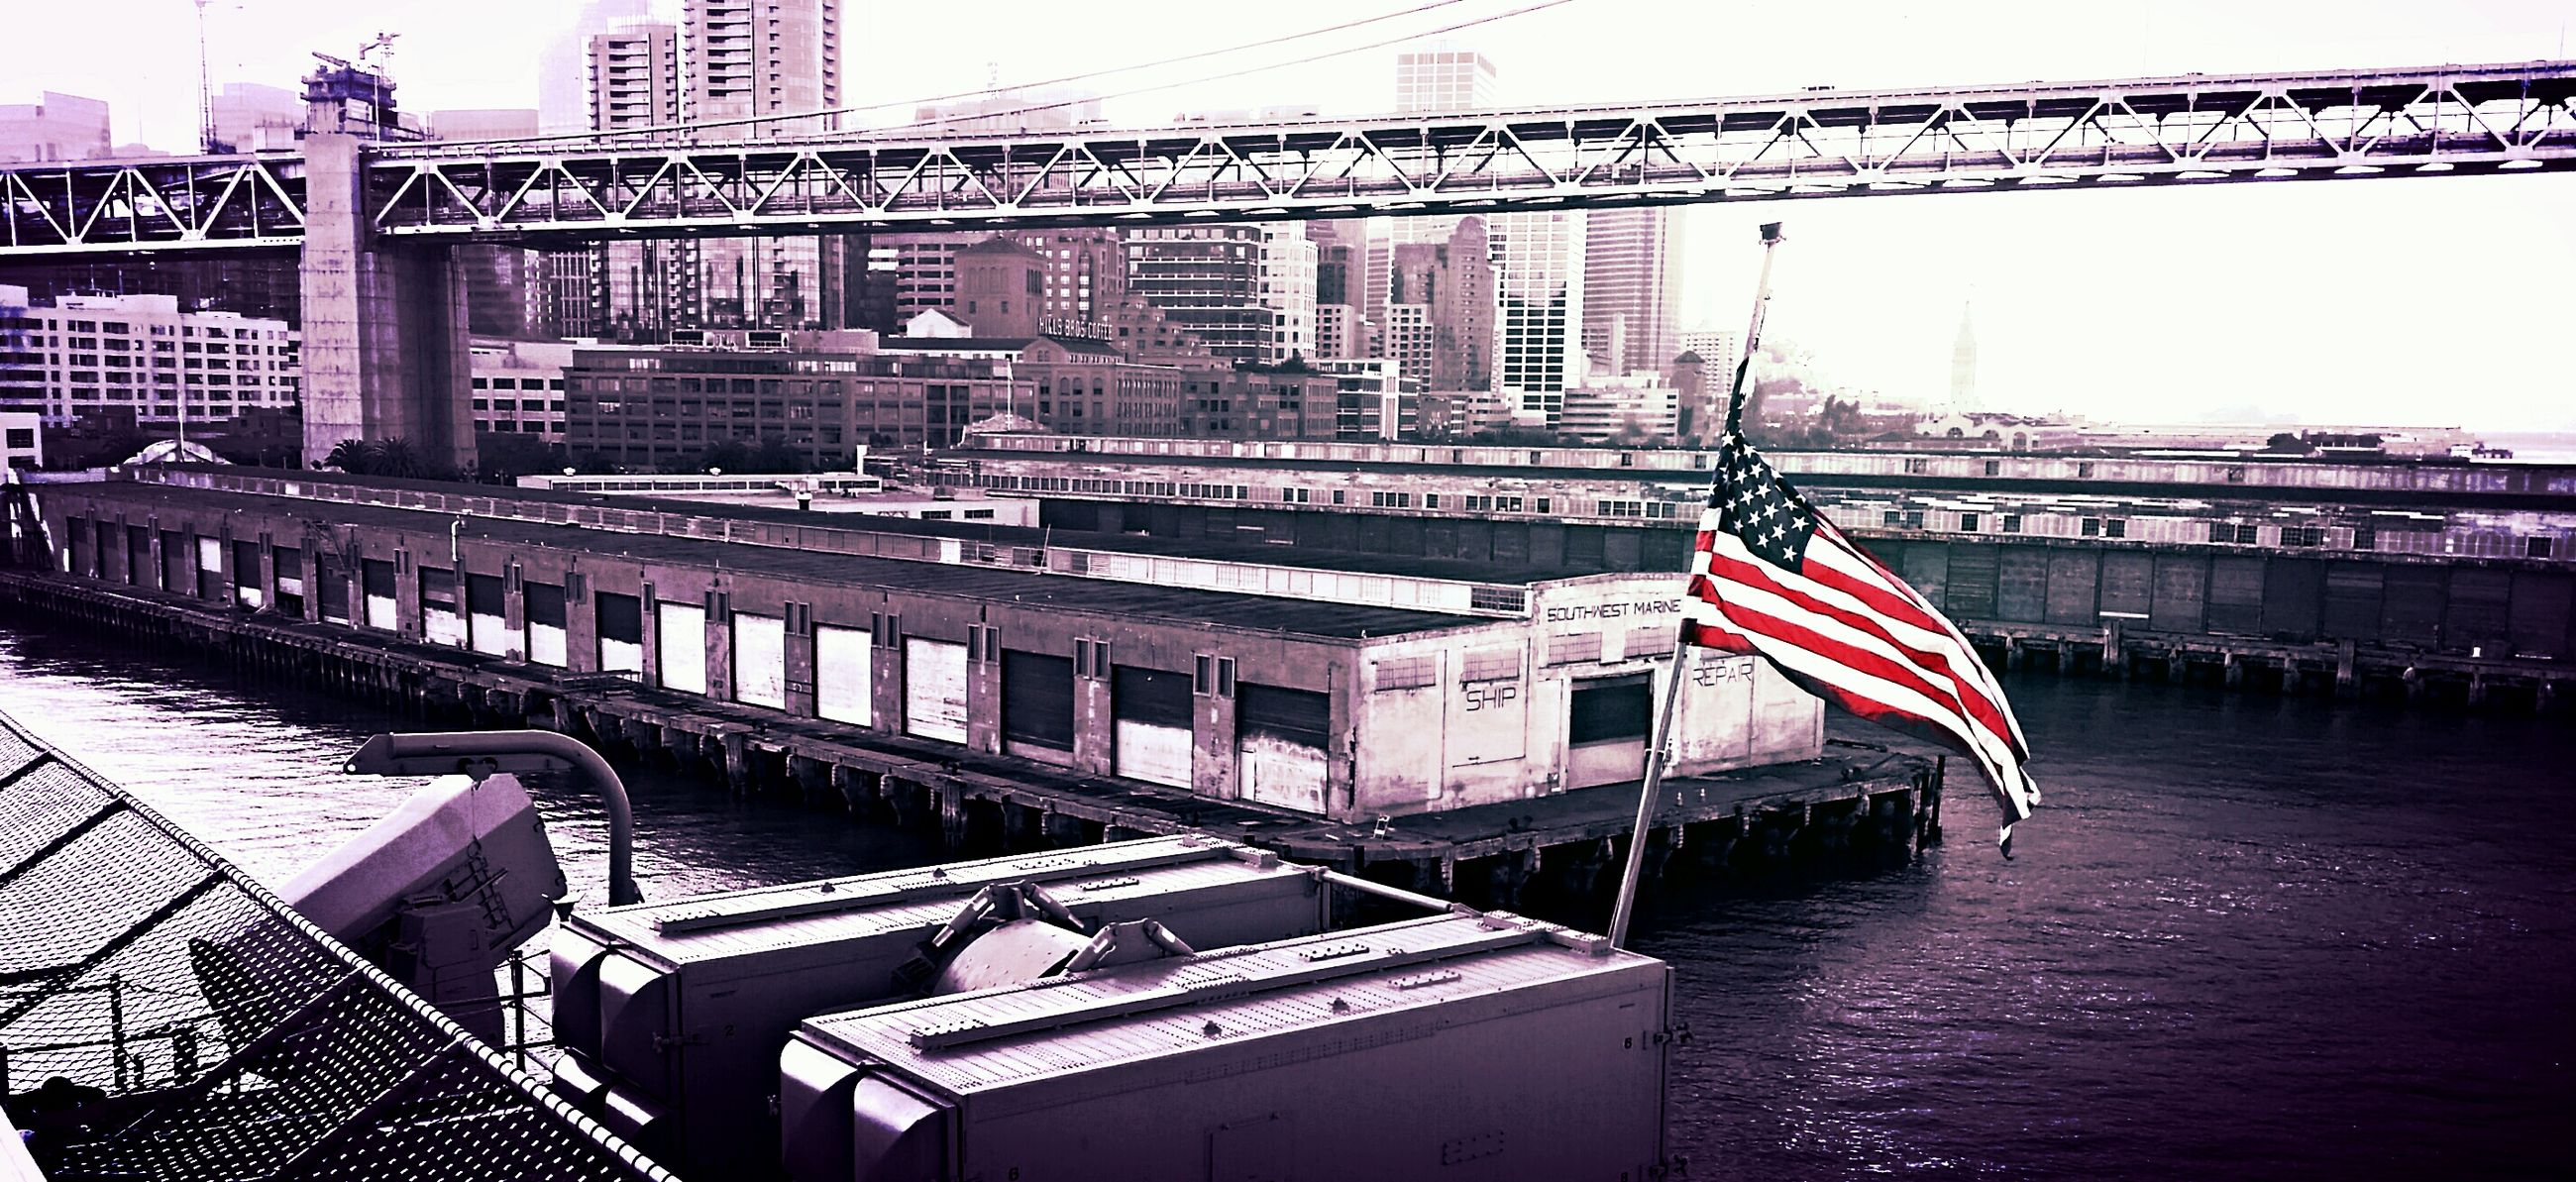 architecture, built structure, building exterior, city, flag, clear sky, transportation, american flag, river, water, connection, day, red, nautical vessel, patriotism, outdoors, waterfront, national flag, no people, bridge - man made structure